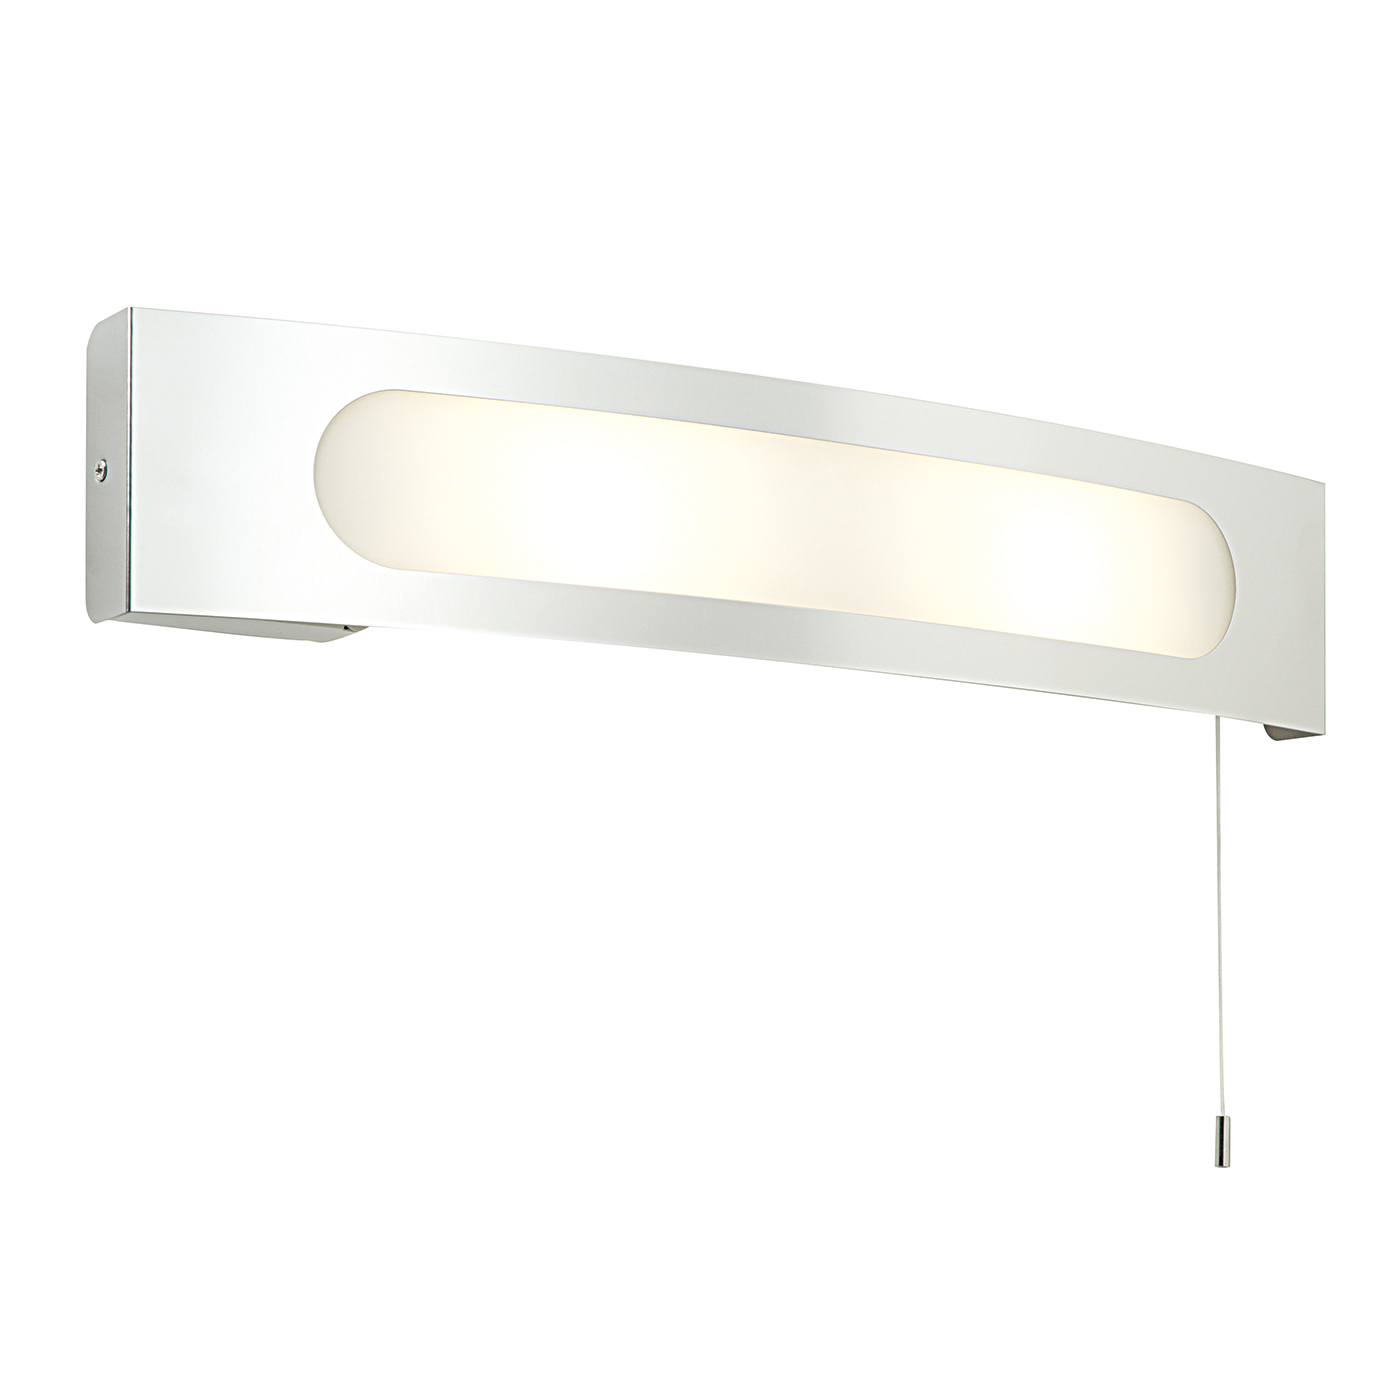 Endon Convesso bathroom shaver light 25W stainless steel frosted glass pull cord Thumbnail 1